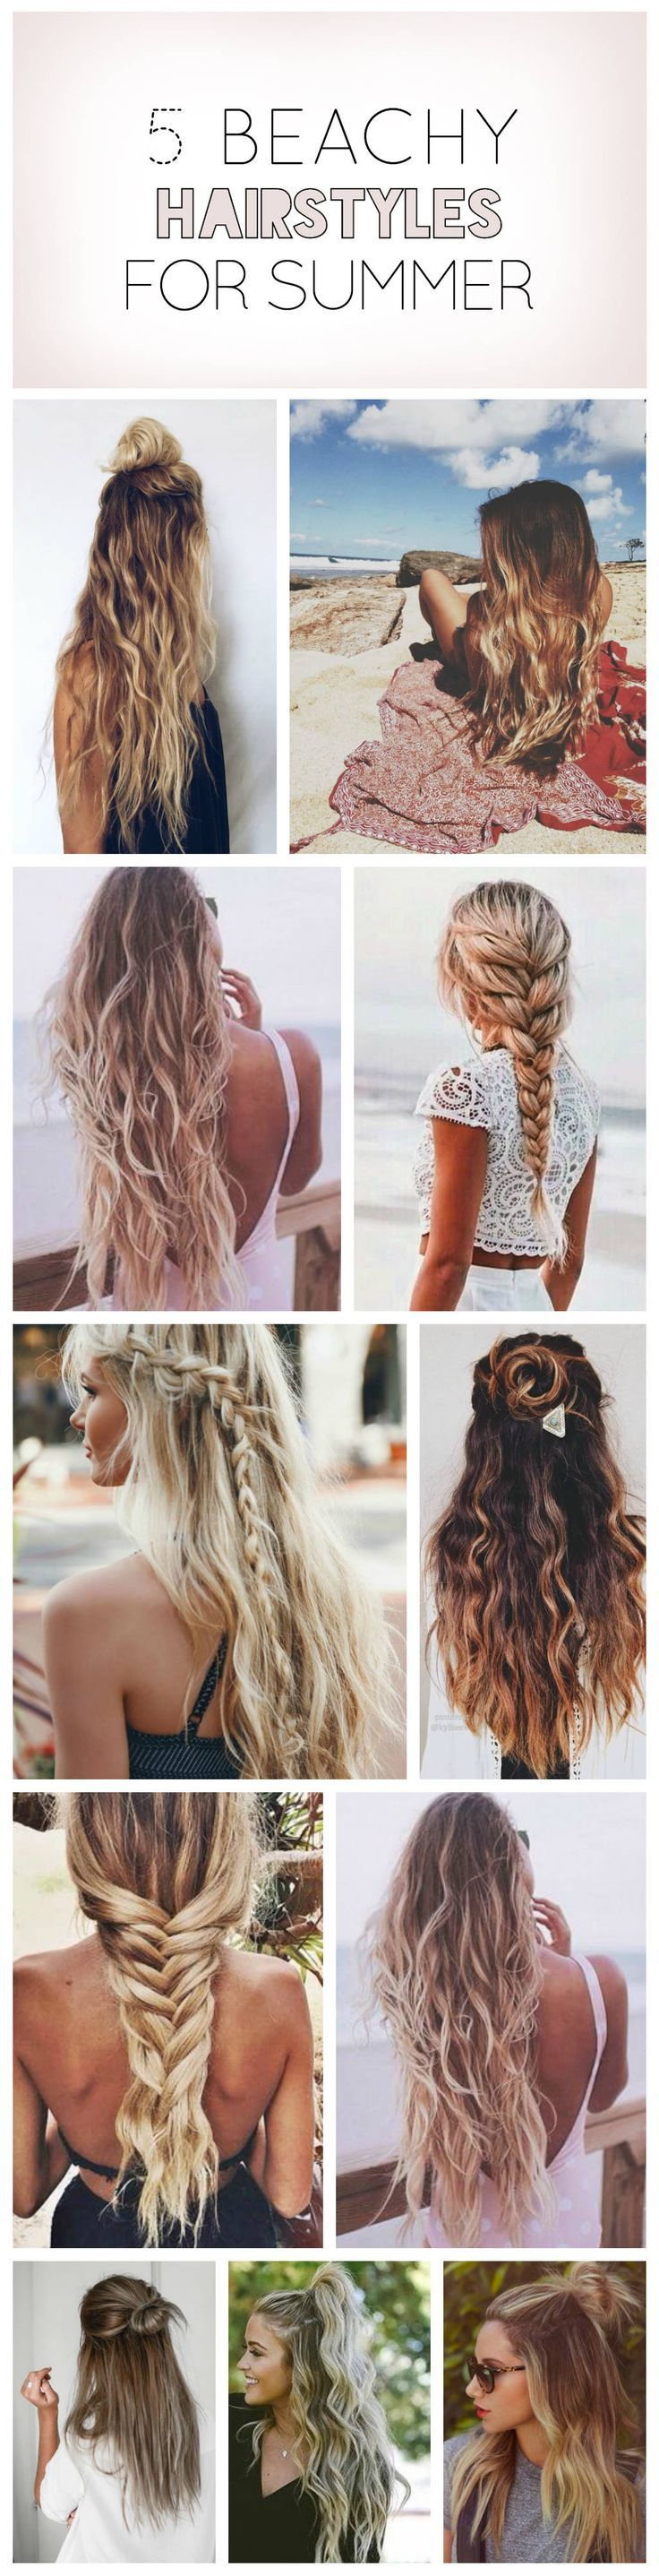 Beachy hairstyles for summer | http://www.hercampus.com/school/trinity/easy-summer-hairstyles